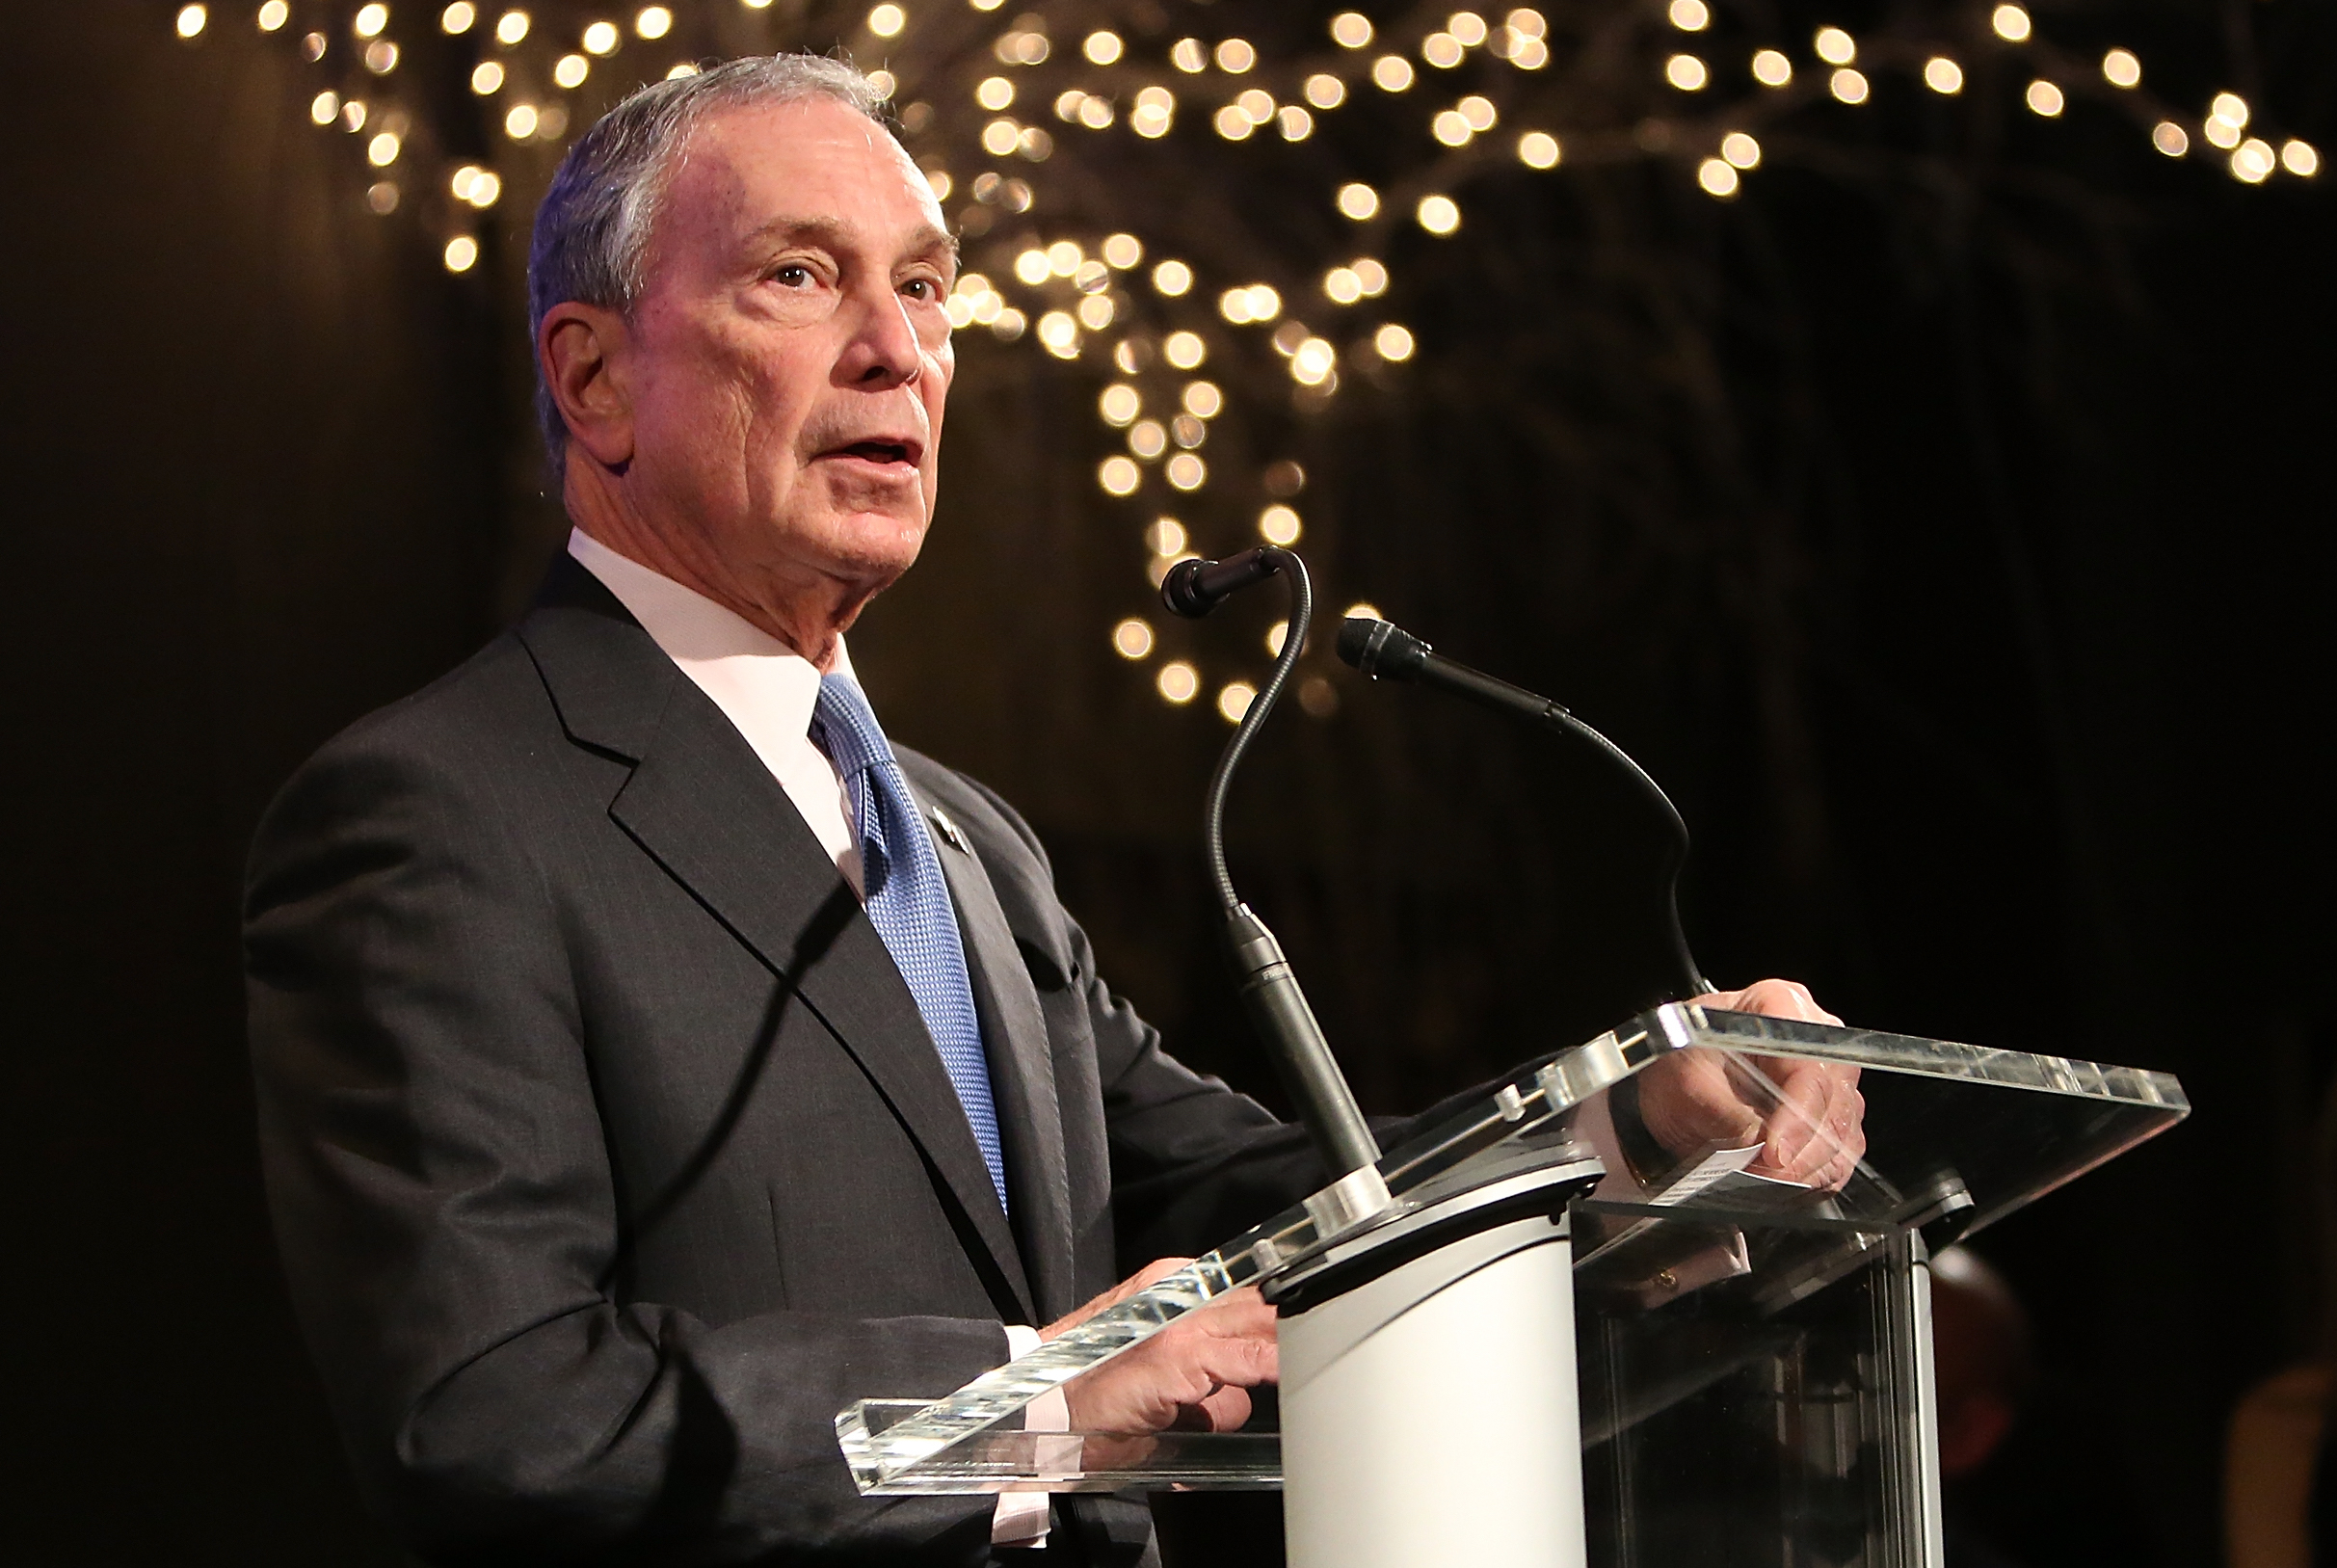 Mike Bloomberg trashes Donald Trump's business record in fiery DNC speech